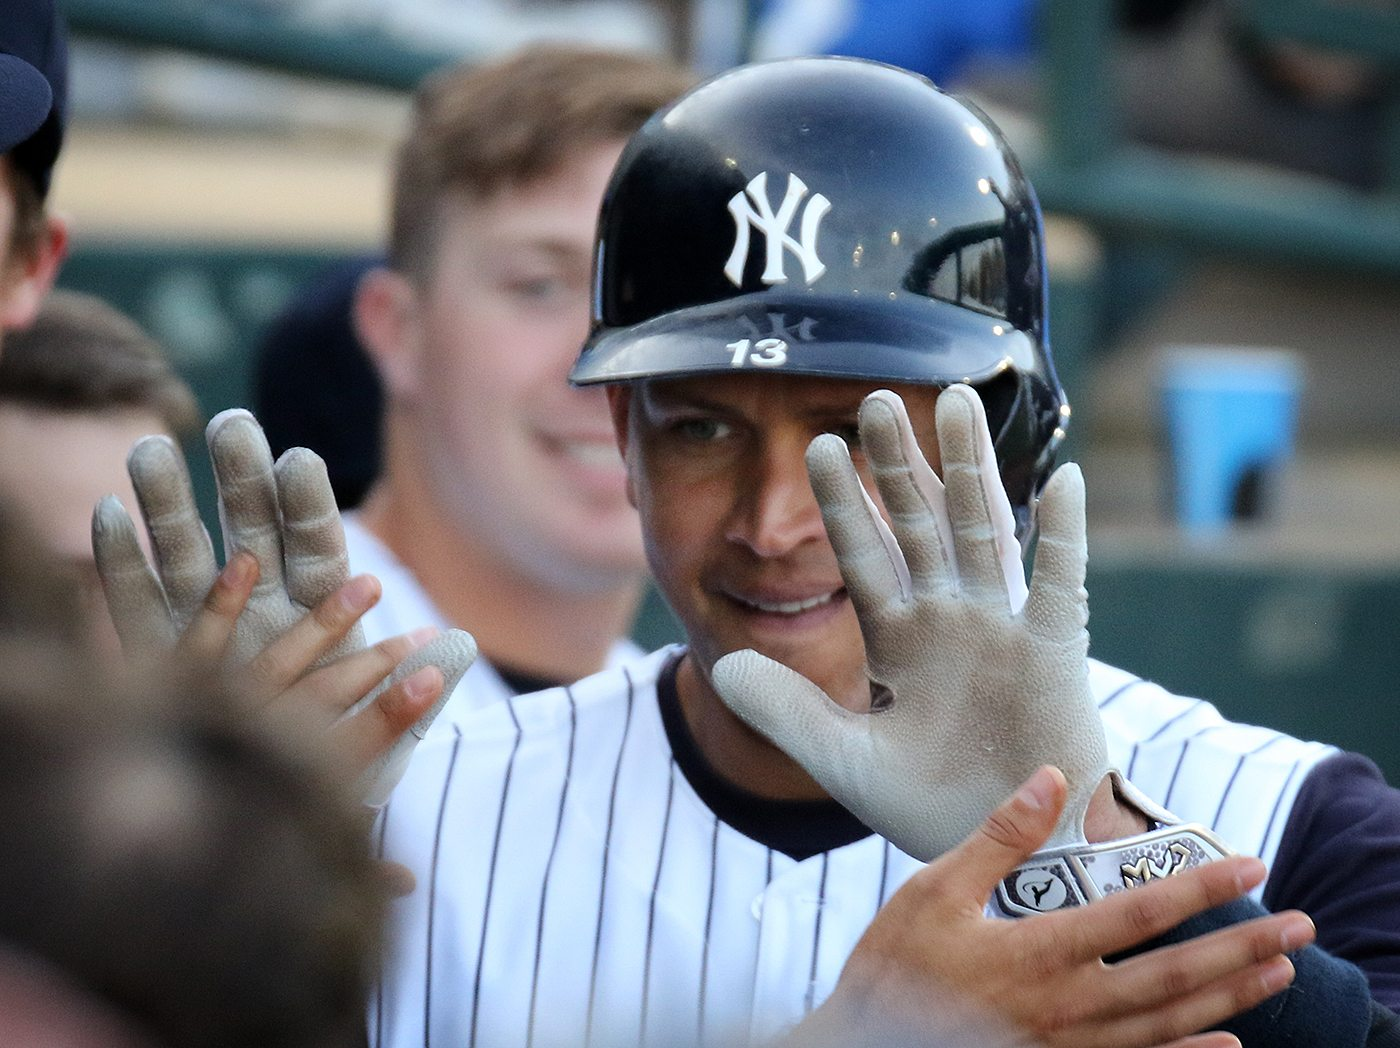 New York Yankees slugger Alex Rodriguez returns to the dugout at ARM & HAMMER Park in Trenton on Wednesday, May 25, 2016 after hitting a second inning home run during game against the New Hampshire Fisher Cats. Rodriguez joined the Double A Yankee farm team for a second day as part of a rehab assignment. Photo by Martin Griff